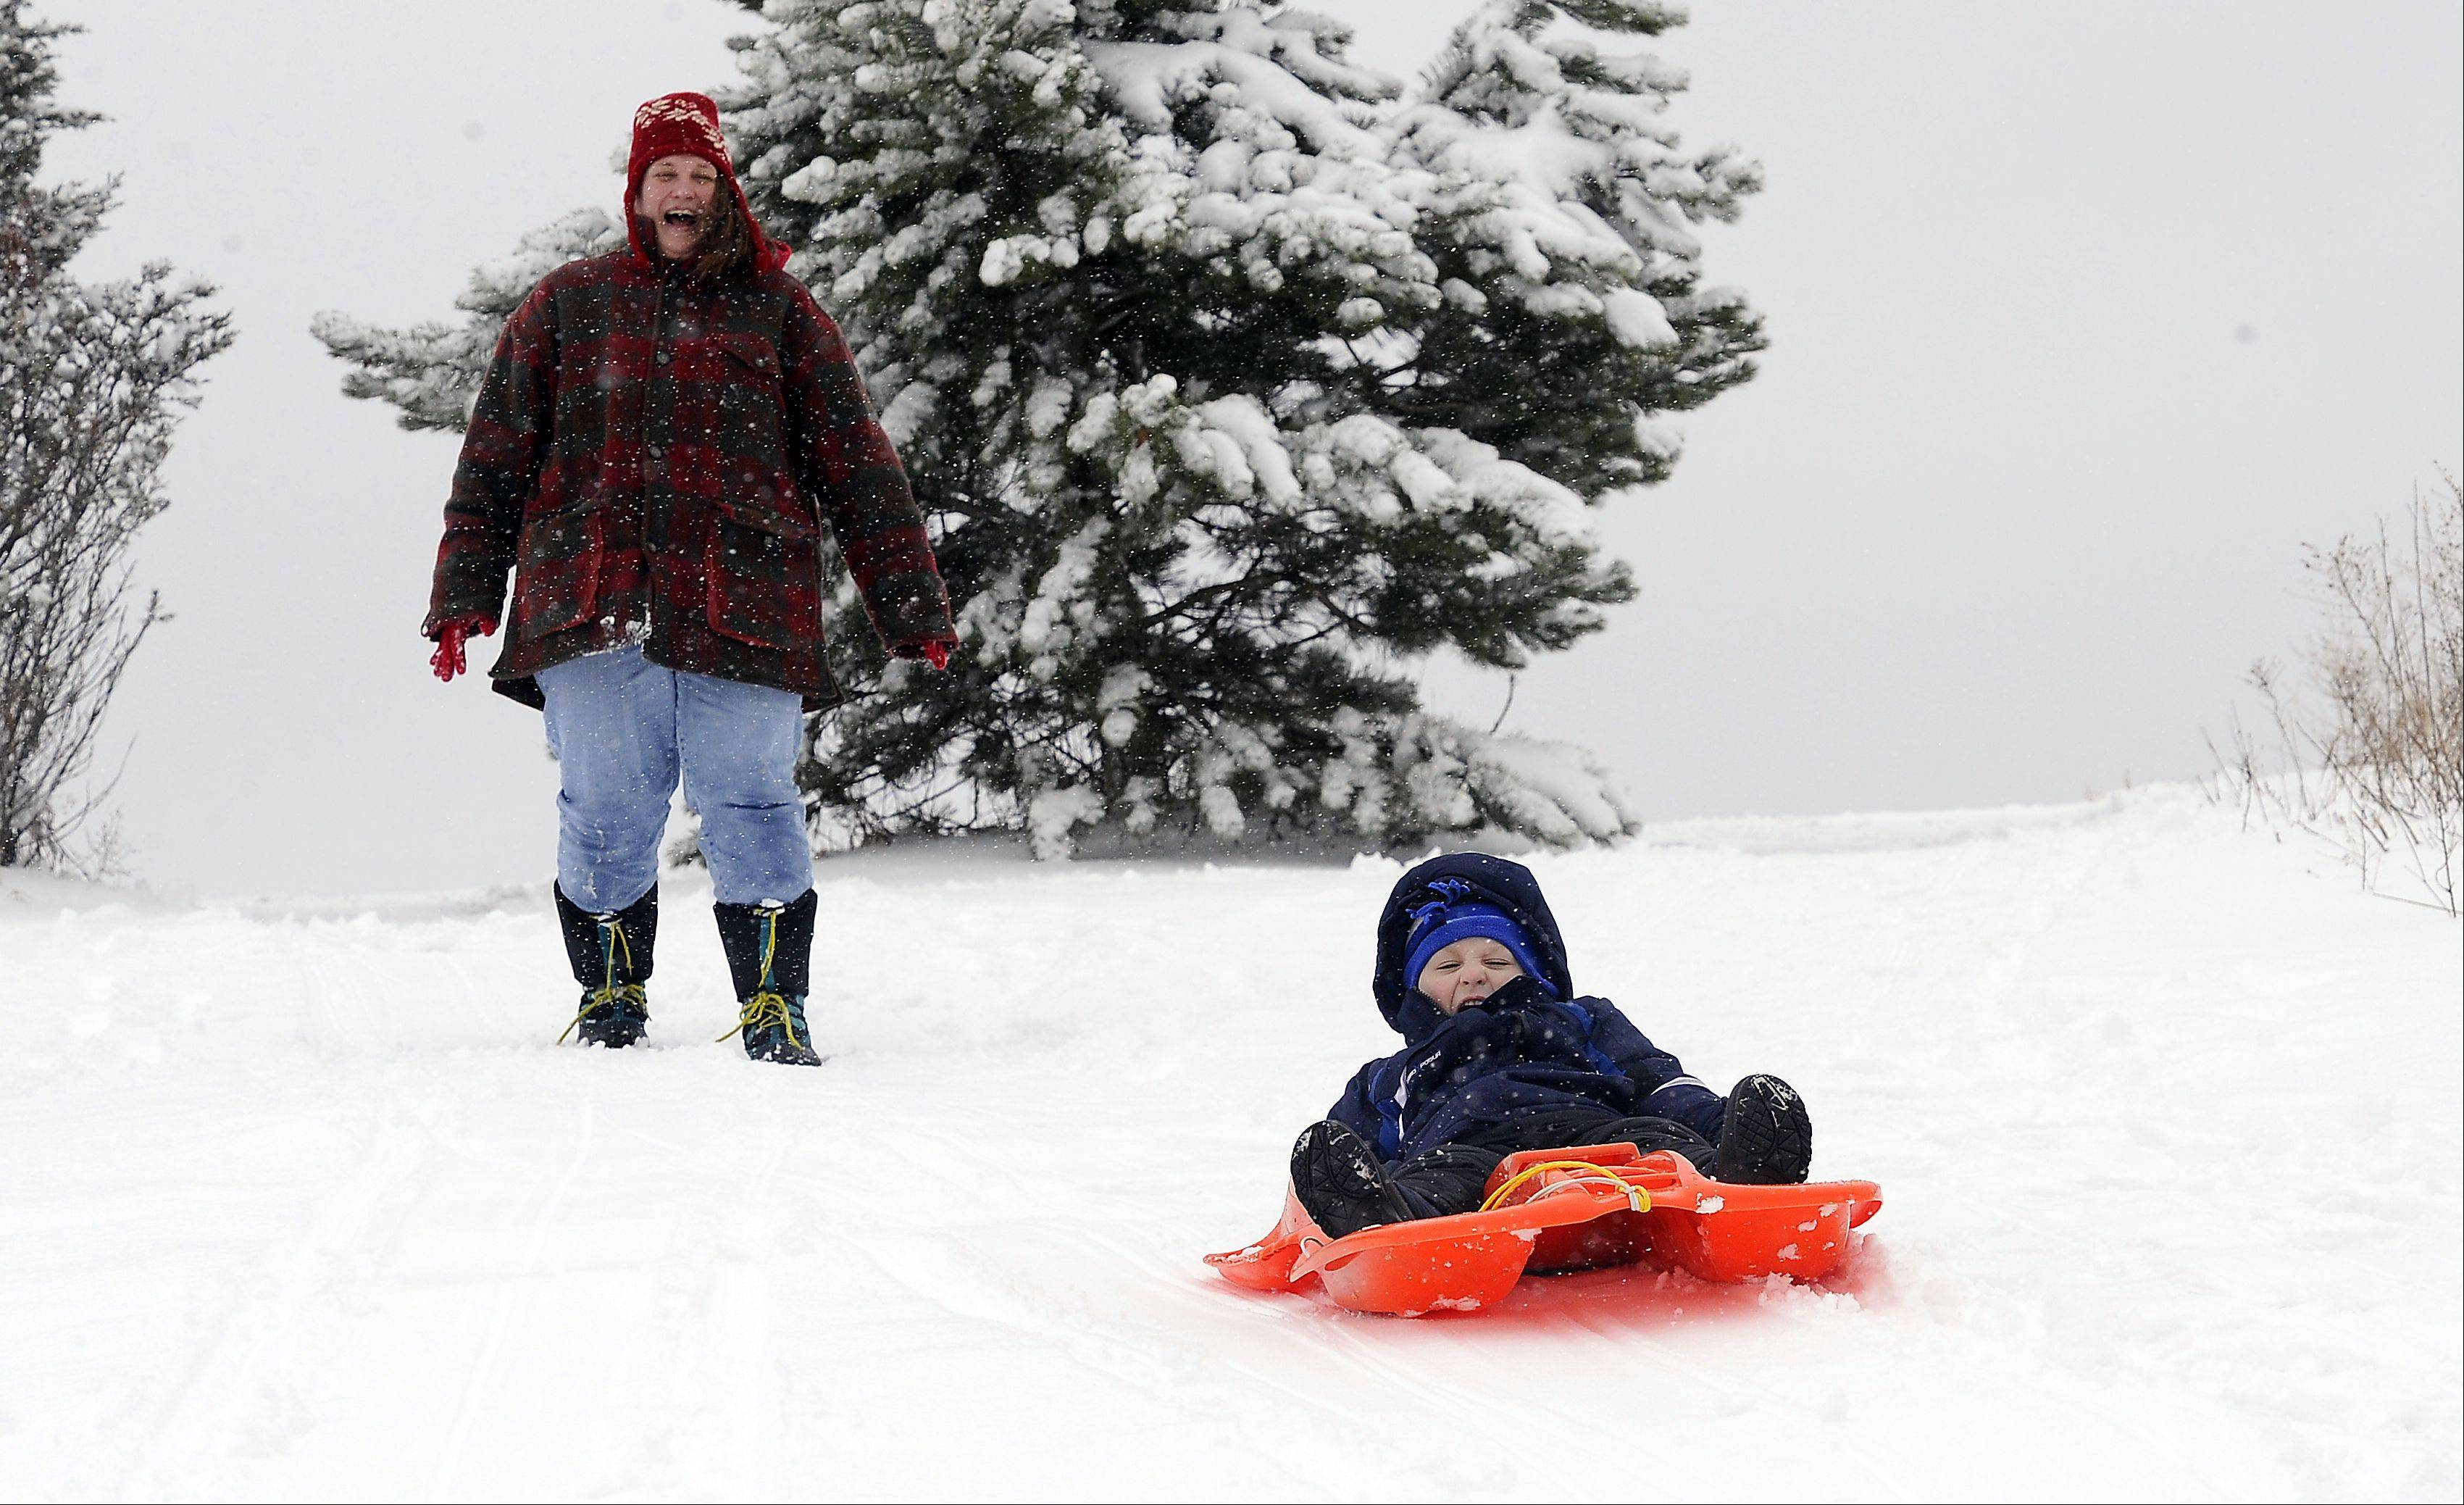 Karla Richards and her son Charlie, 3, of Palatine, find that the snow is just right for sledding at the Hamiliton Reservoir in Palatine Wednesday.